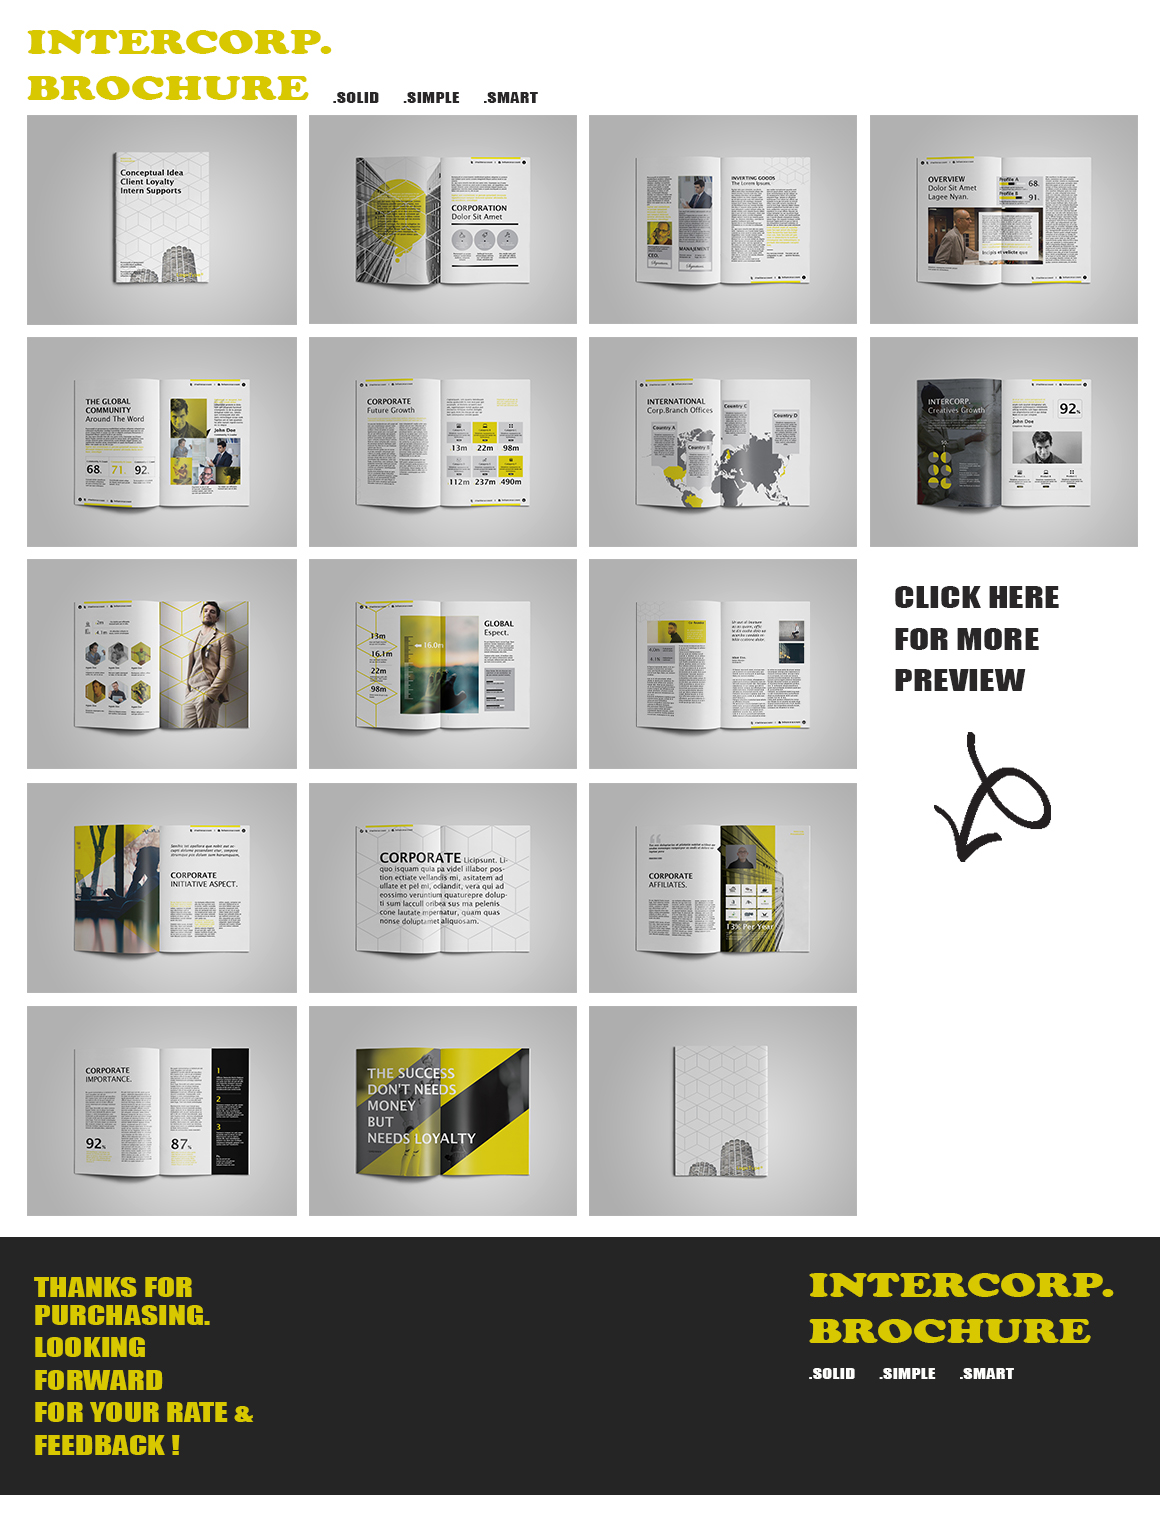 Intercorp Brochure Template example image 8